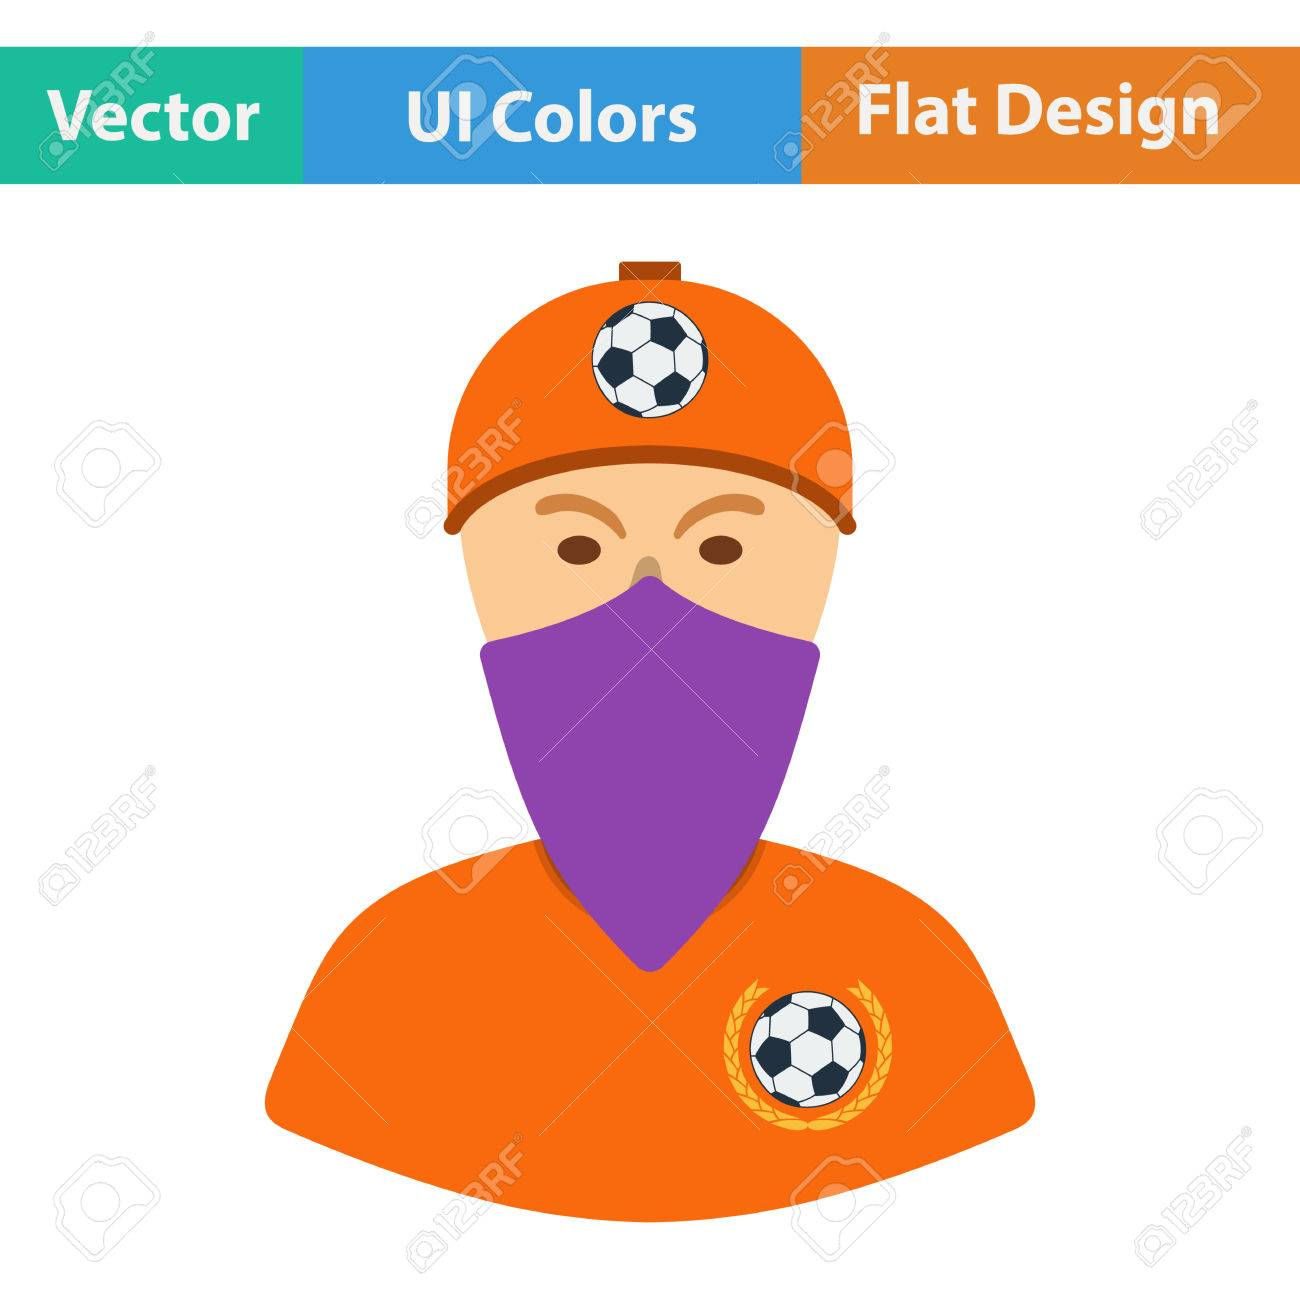 football fan clipart. football fan with covered face by scarf icon. flat design in ui colors. vector clipart